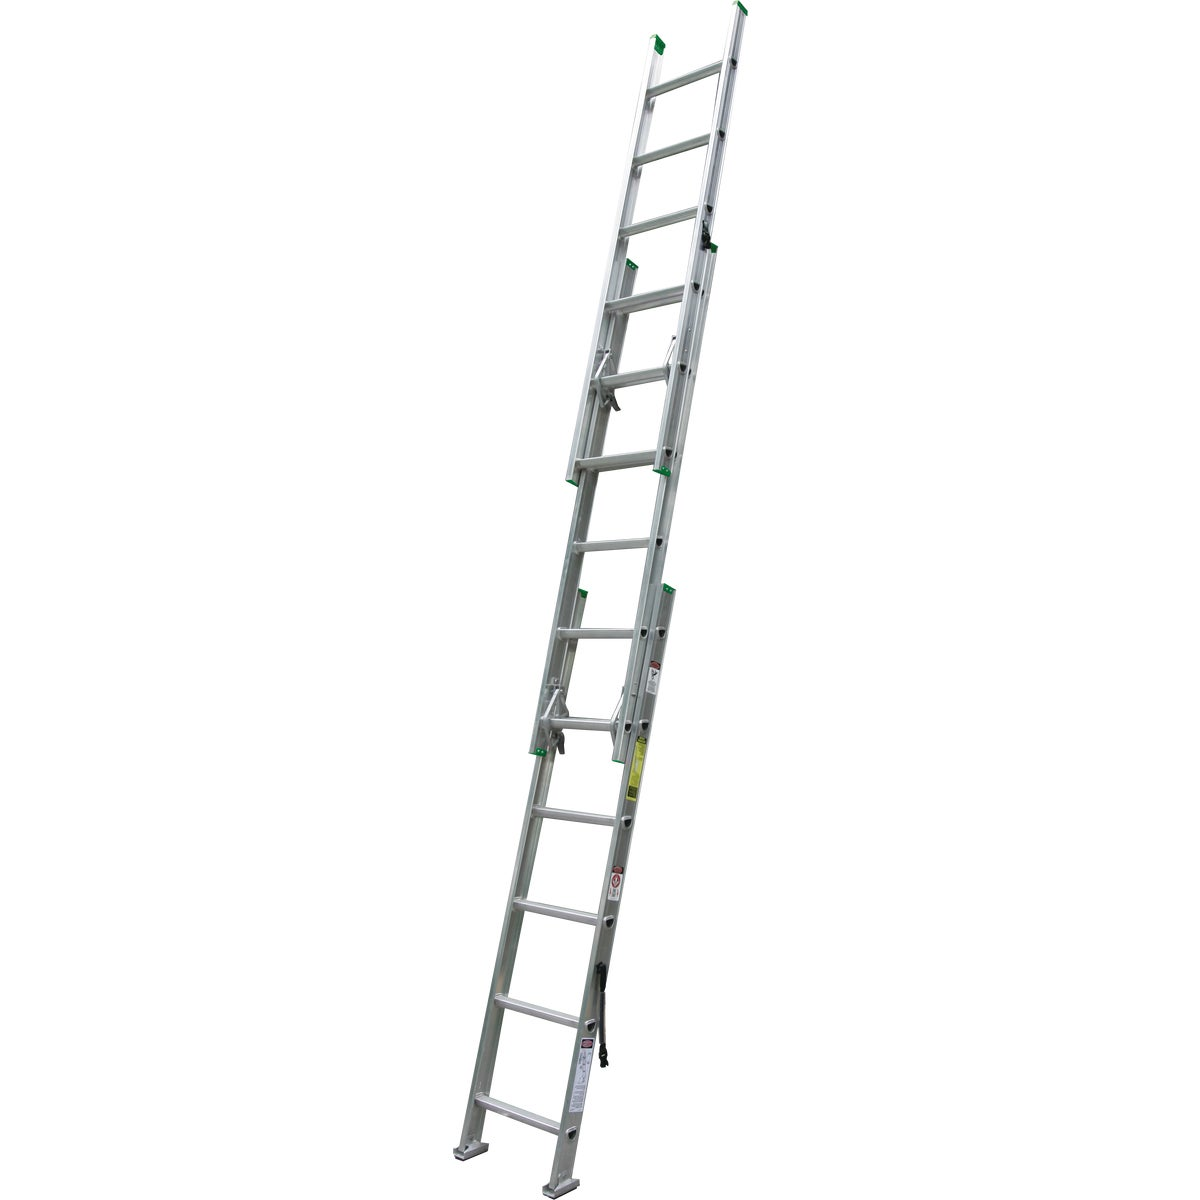 16' ALUM COMP EXT LADDER - D1216-3 by Werner Ladder